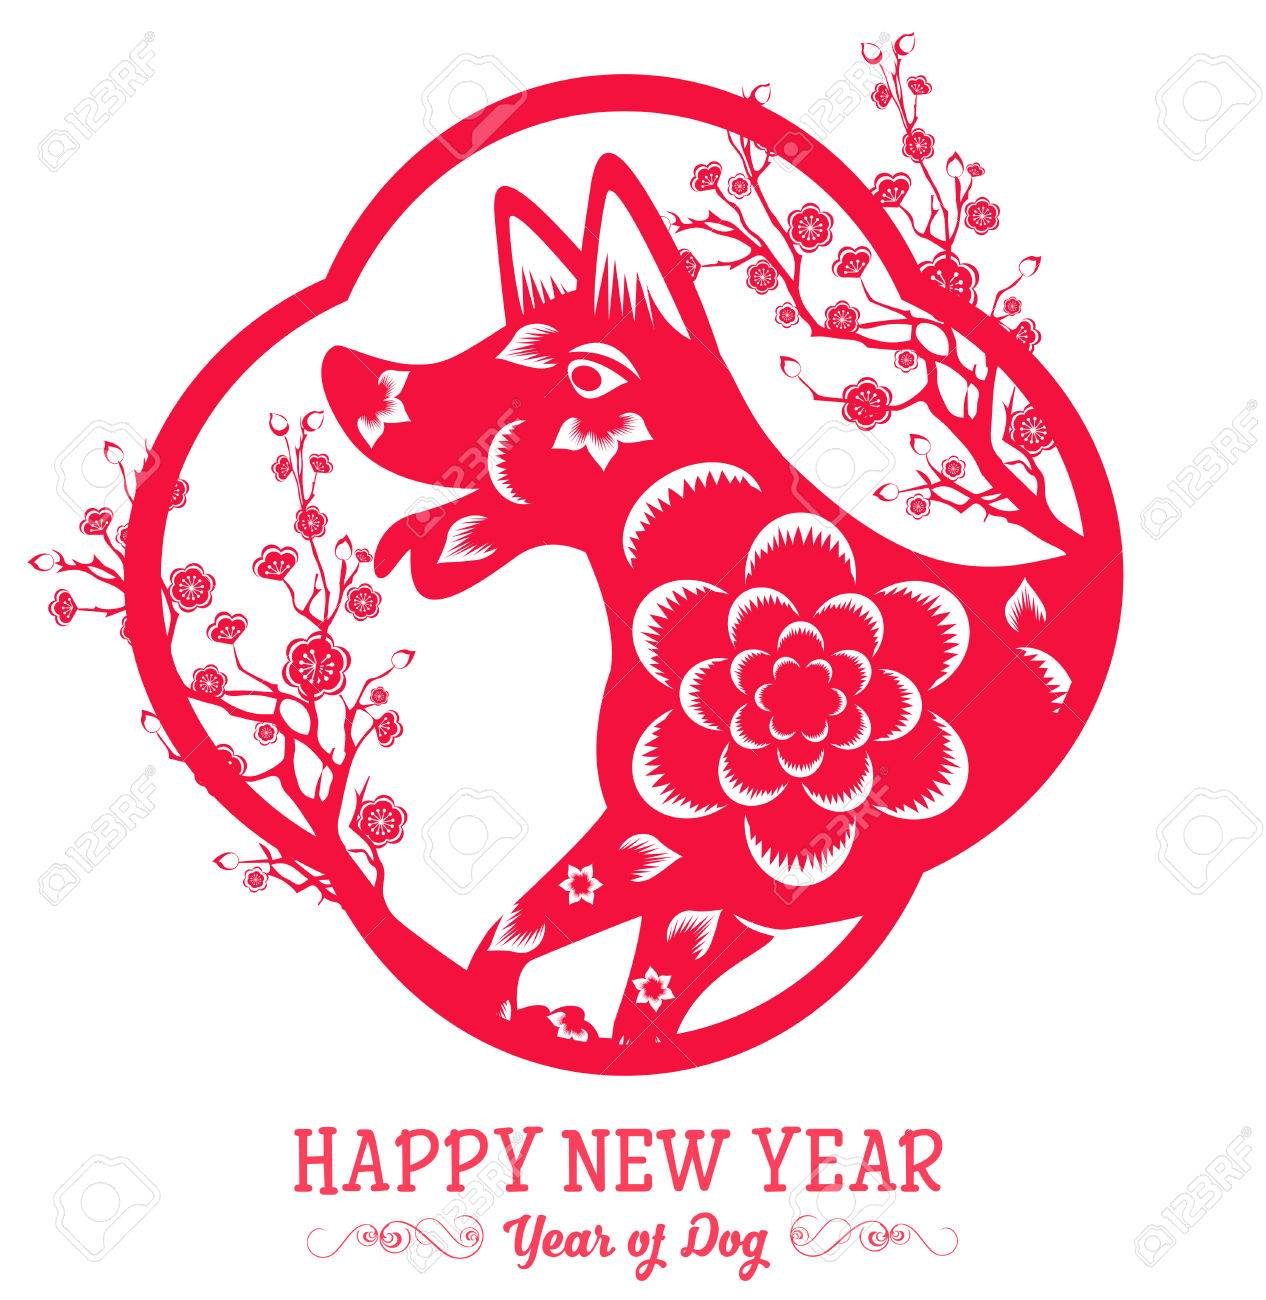 happy chinese new year 2018 year of the dog lunar new year stock vector - Happy Lunar New Year In Chinese